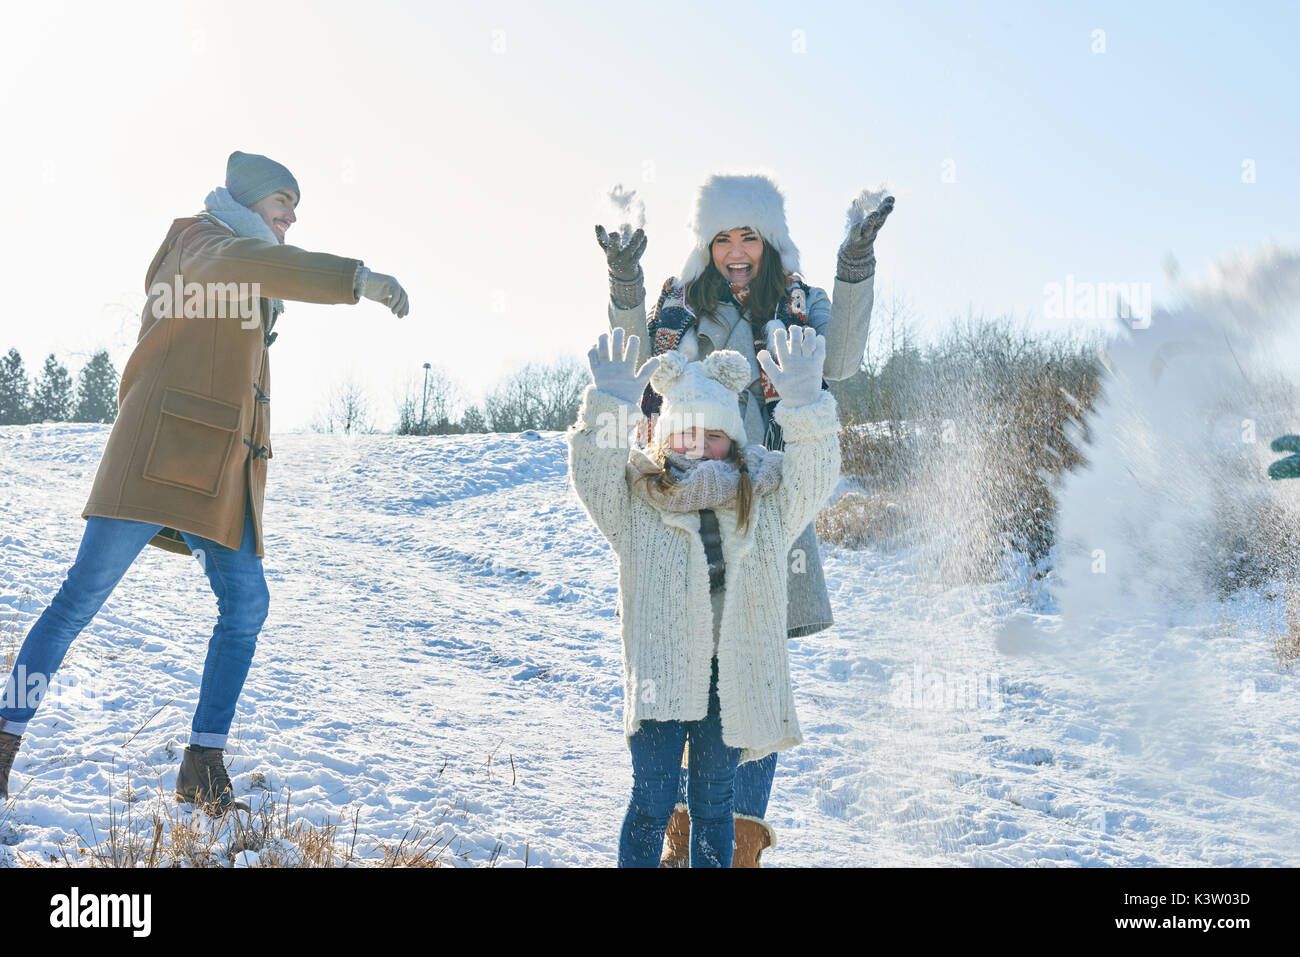 Family in snowball fight having fun with joy in winter - Stock Image